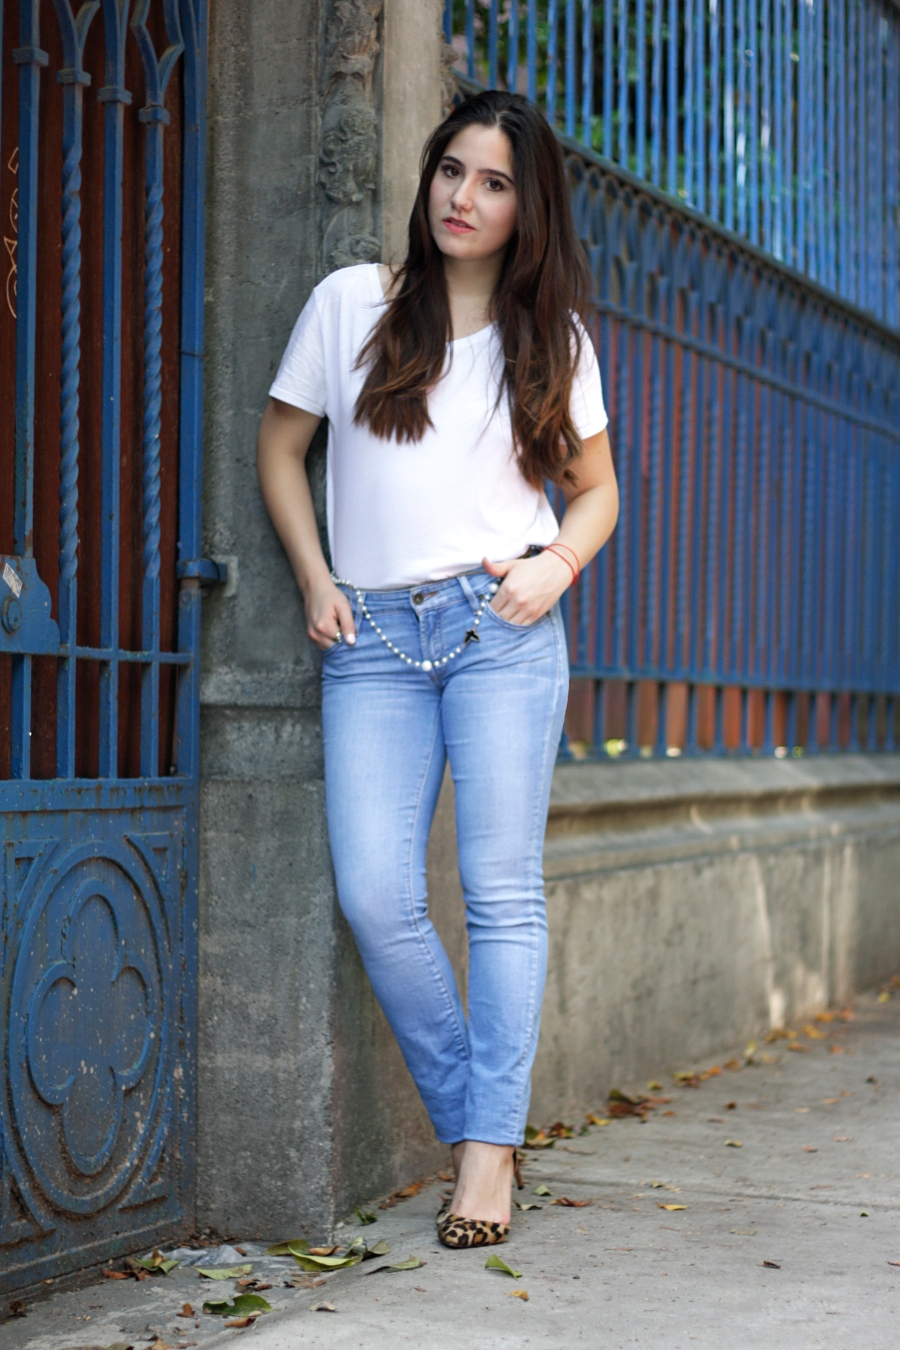 STATEMENT-SHOES-OUTFIT-ATUENDO29-2